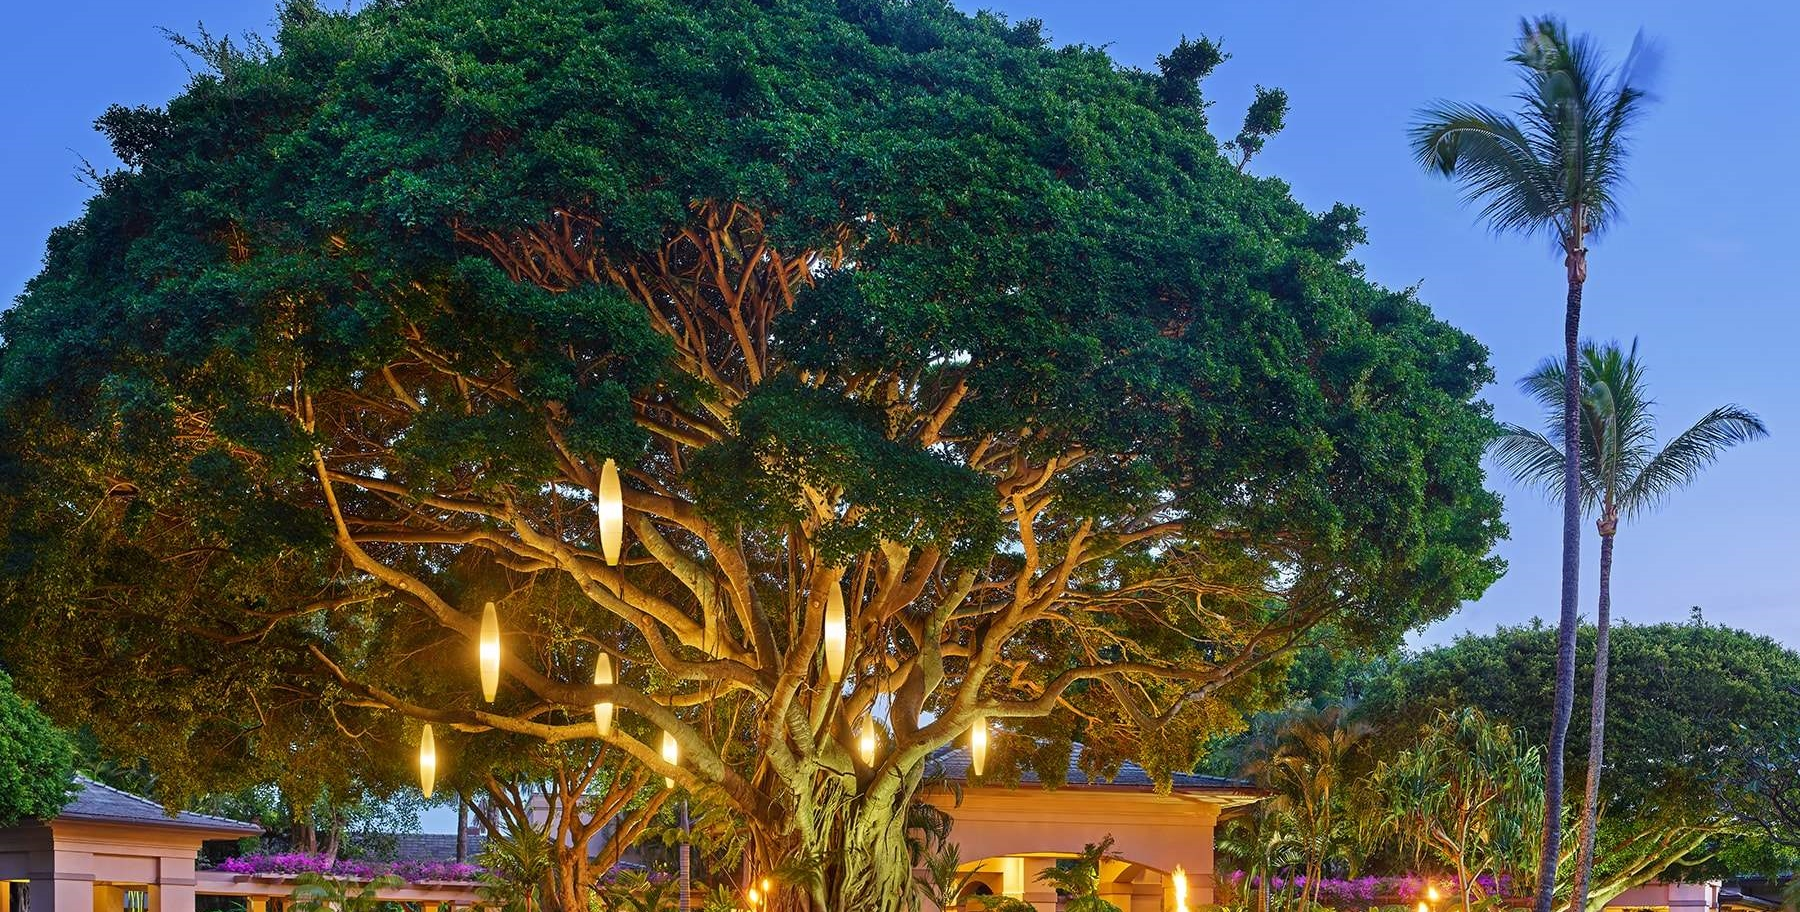 Banyan Tree located at the iconic Ritz-Carlton, Kapalua on Maui